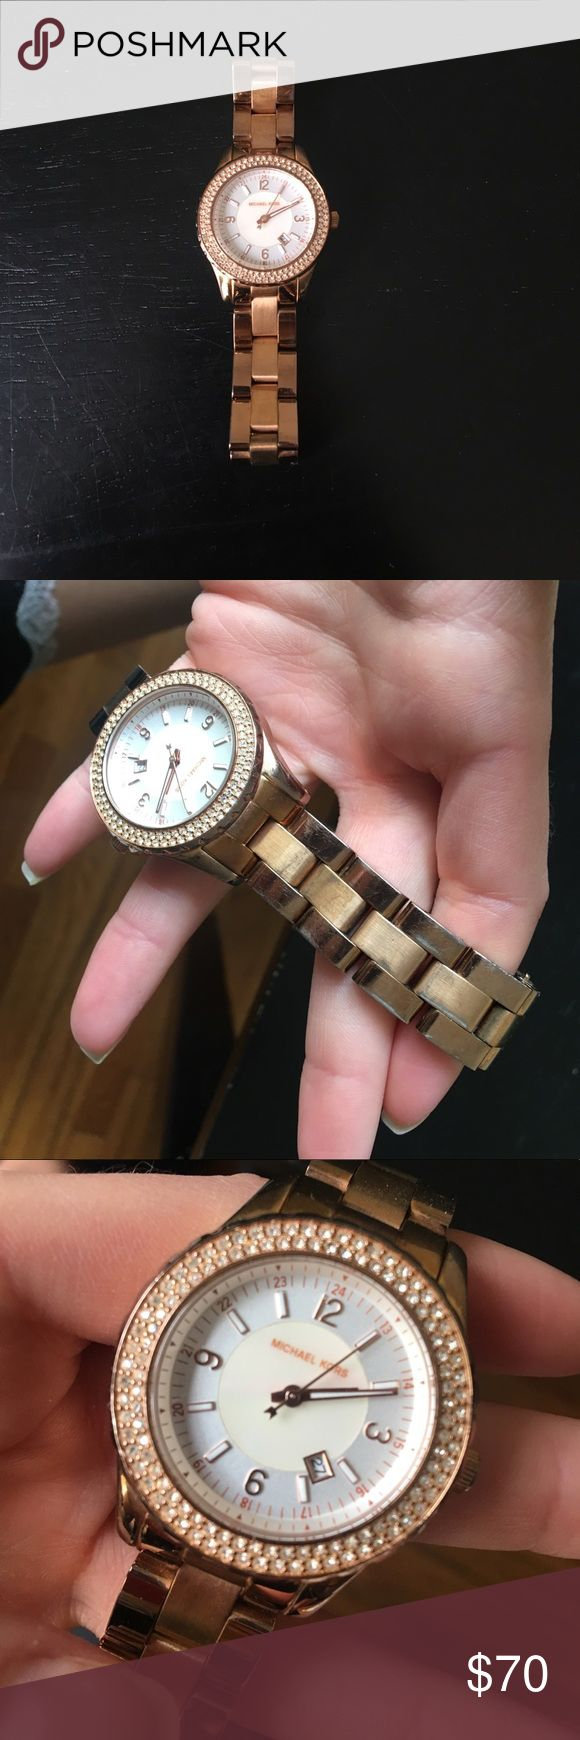 Michael Kors watch Rose gold watch with diamonds around the face of the watch. Very minimal wear and tear (see photos). Needs a replacement battery but it is in great working condition! Have extra pieces to adjust it to your size. Michael Kors Accessories Watches